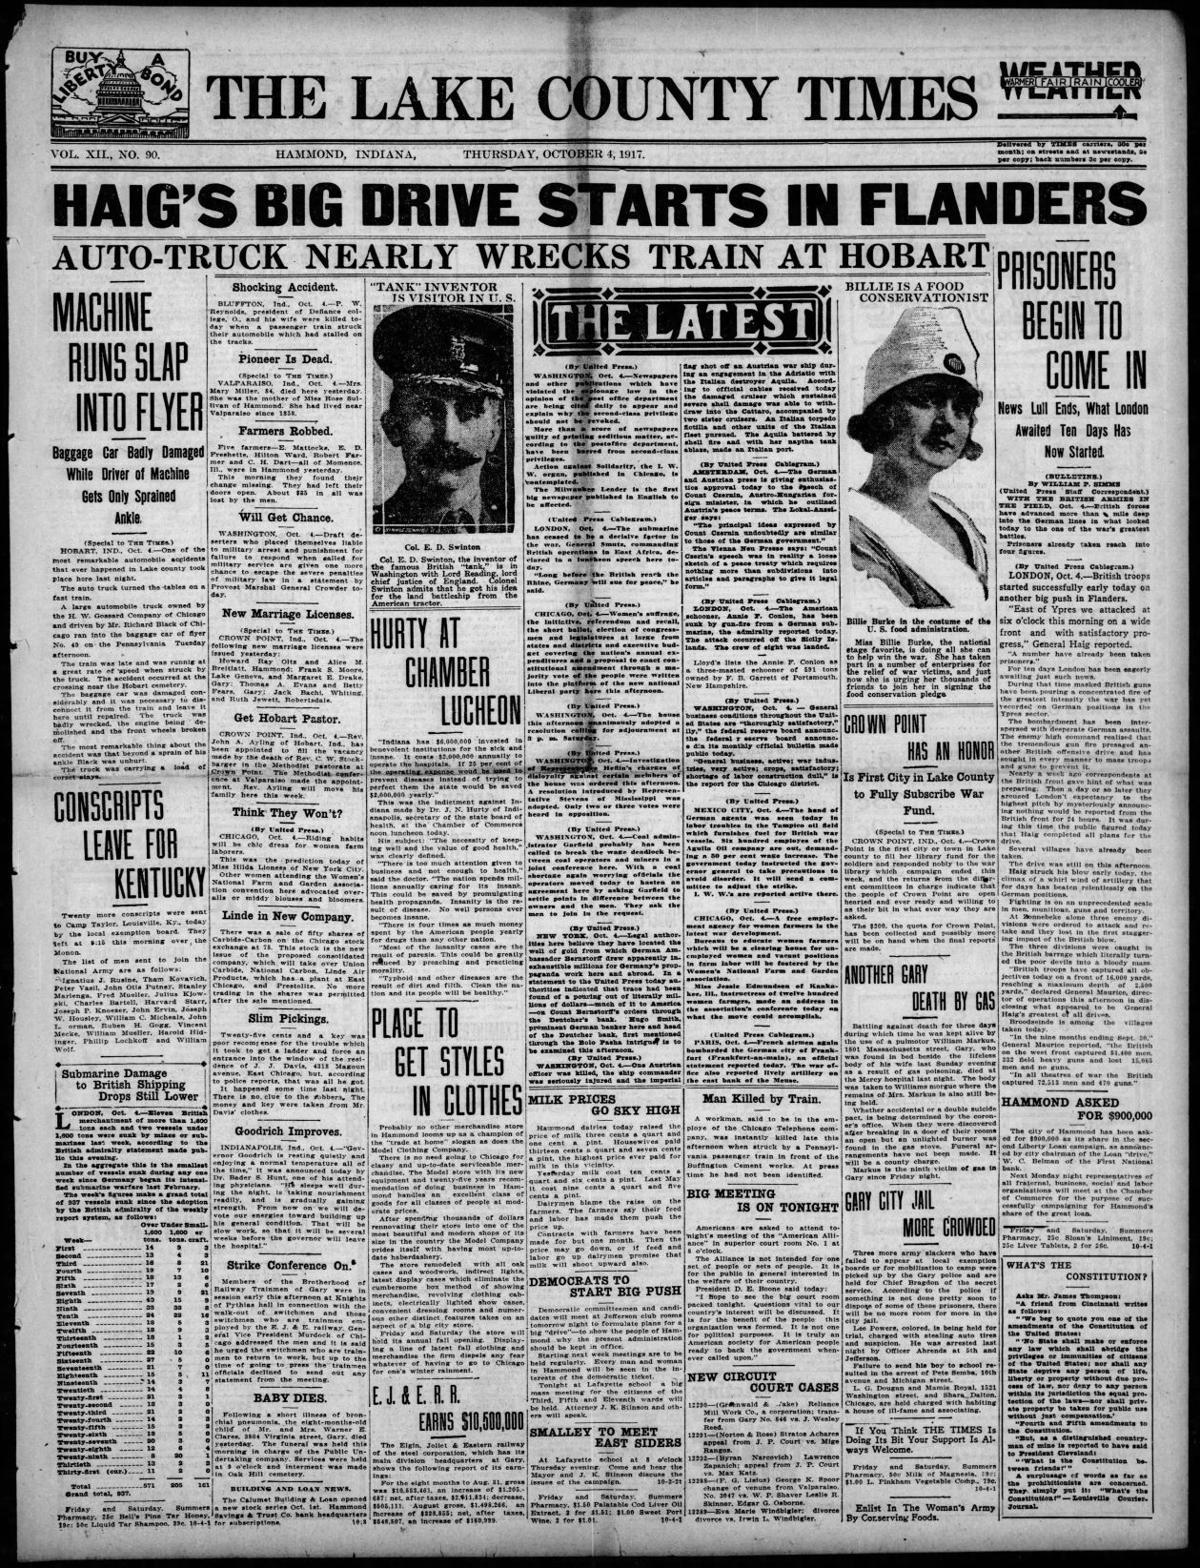 Oct. 4, 1917: Haig's Big Drive Starts in Flanders